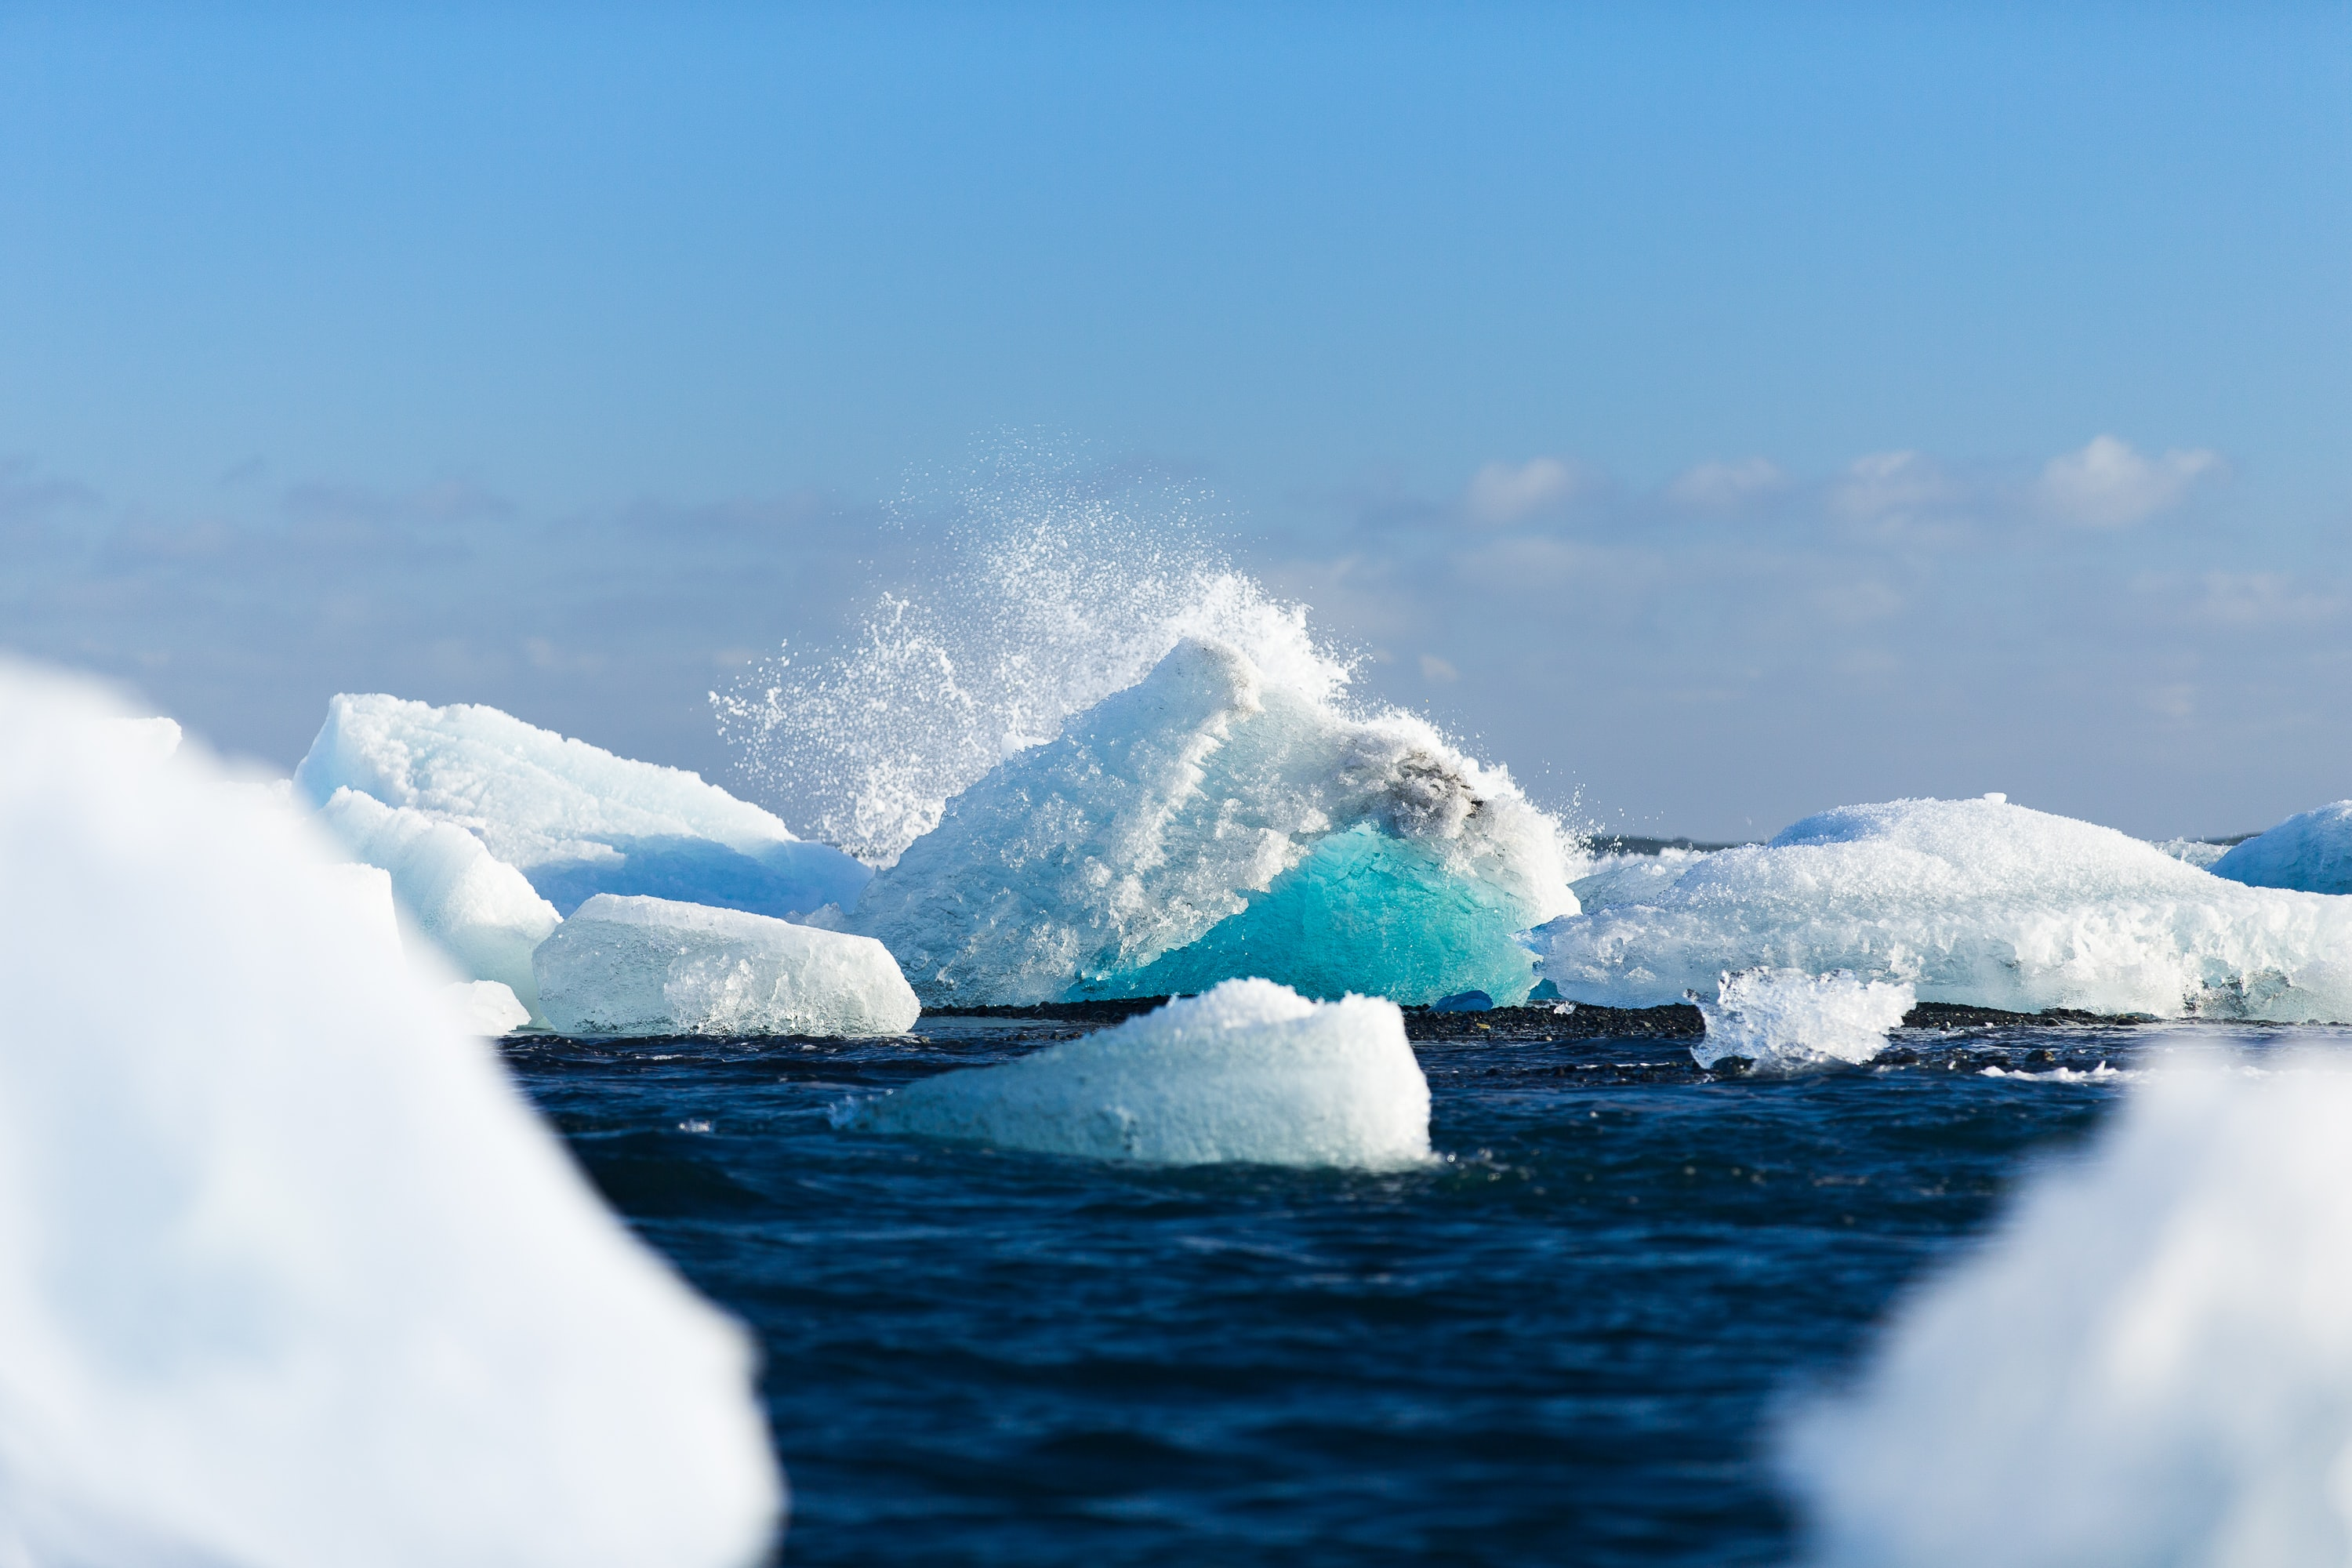 The icebergs of Iceland's Vatnajokull intermingle among the ocean